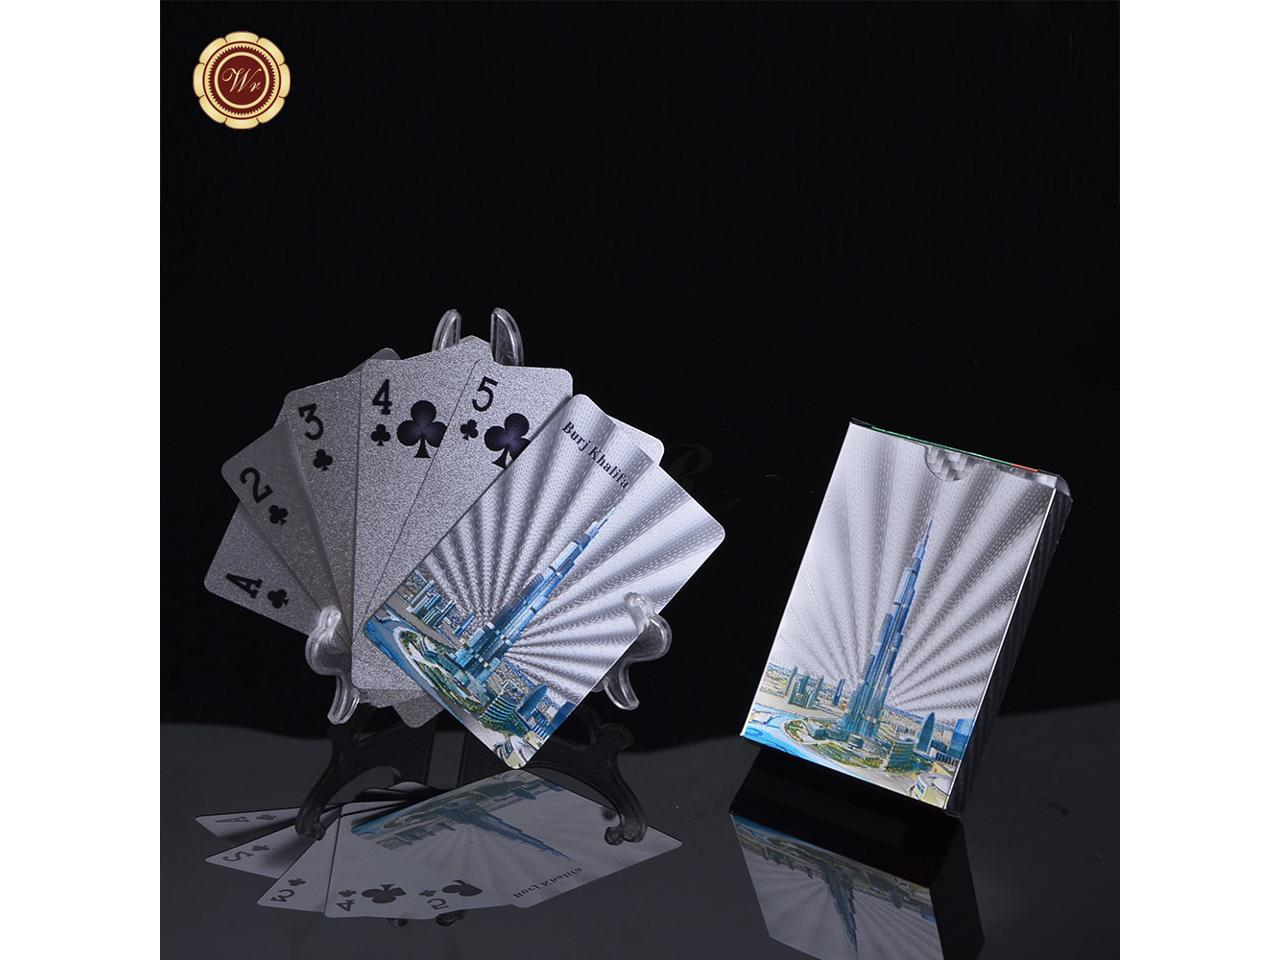 Wr Burj Khalifa Tower Silver Plated Chips Dubai Famous Building Colored Poker Cards Art Crafts For Collectible Family Games Newegg Com